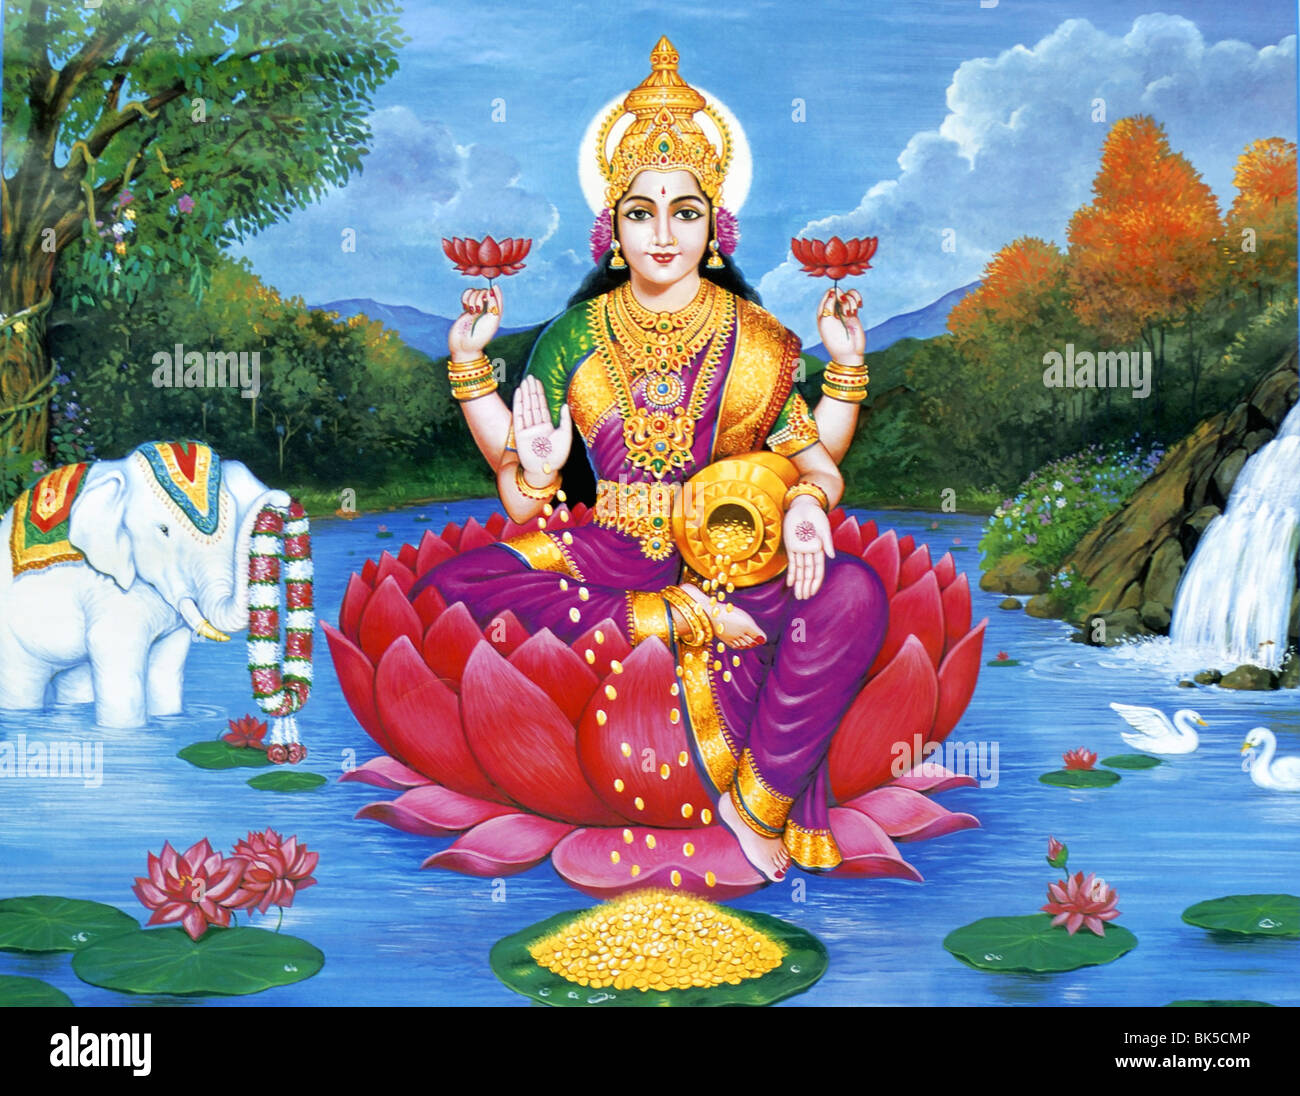 Lakshmi Stock Photos Lakshmi Stock Images Alamy